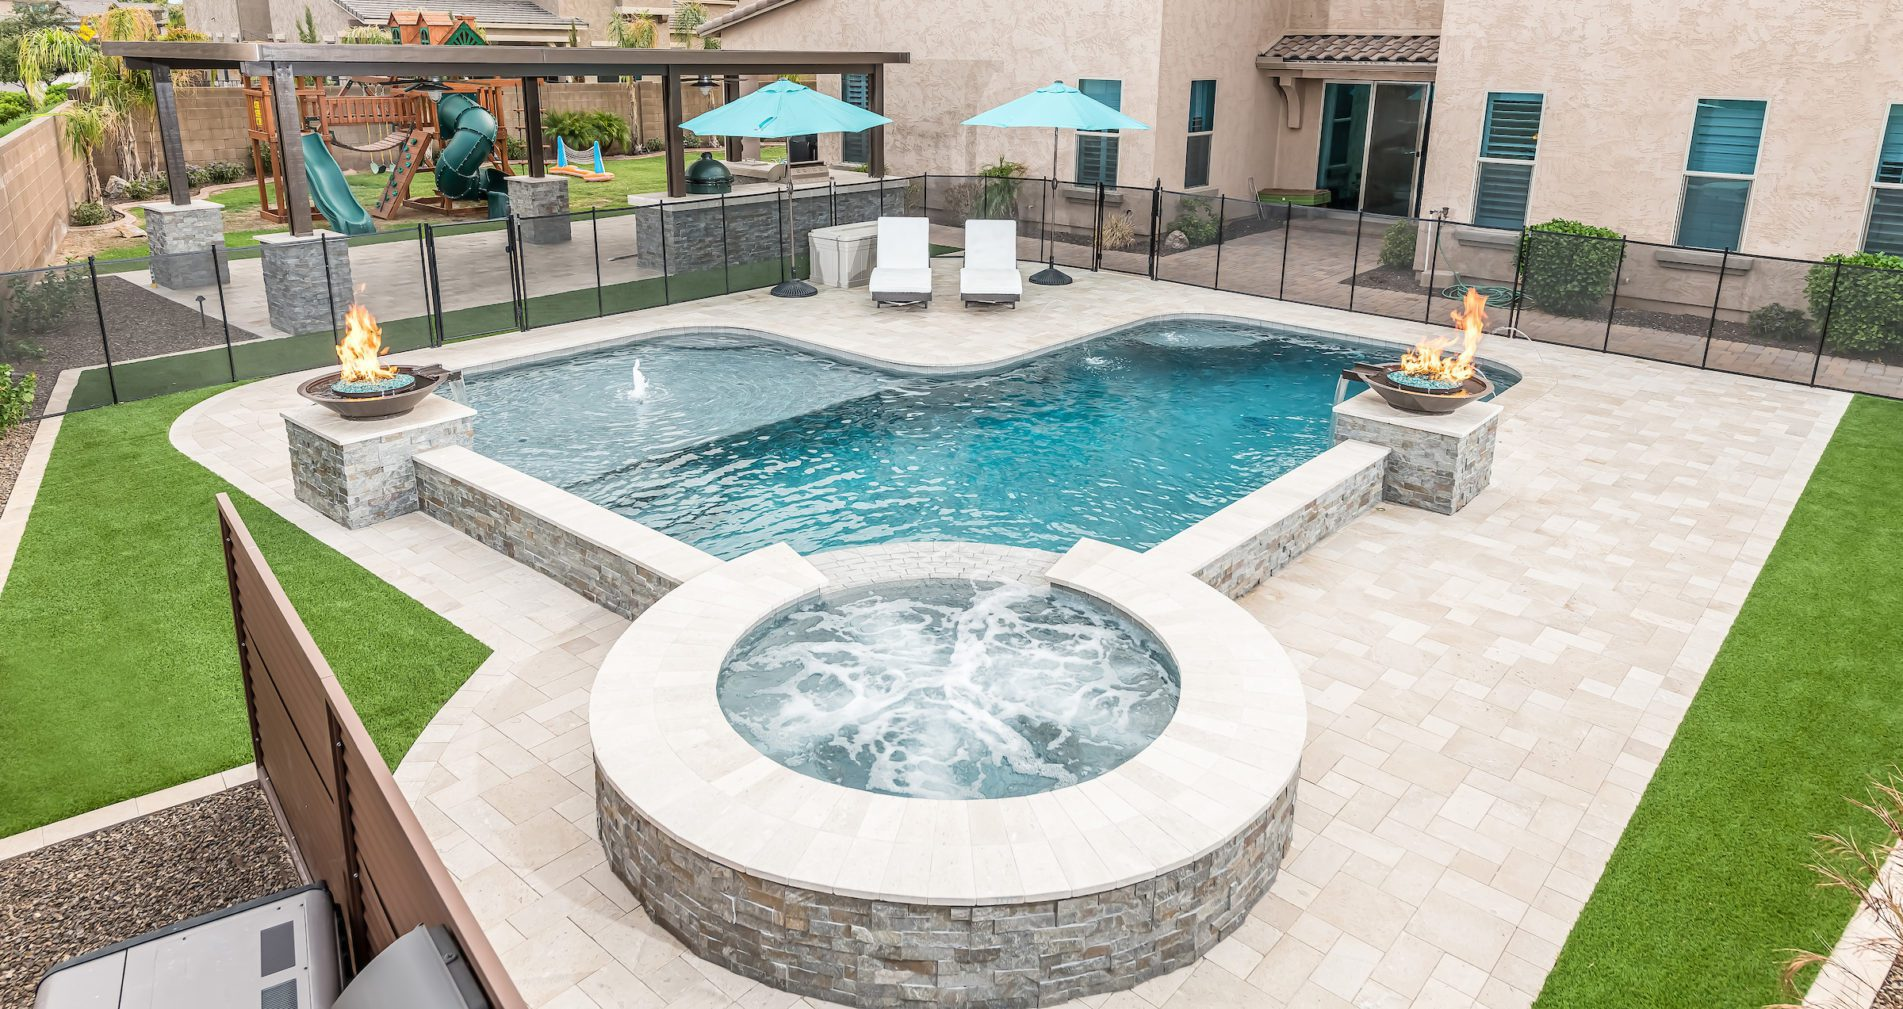 Pool Barrier Requirements: Arizona City By City Guide